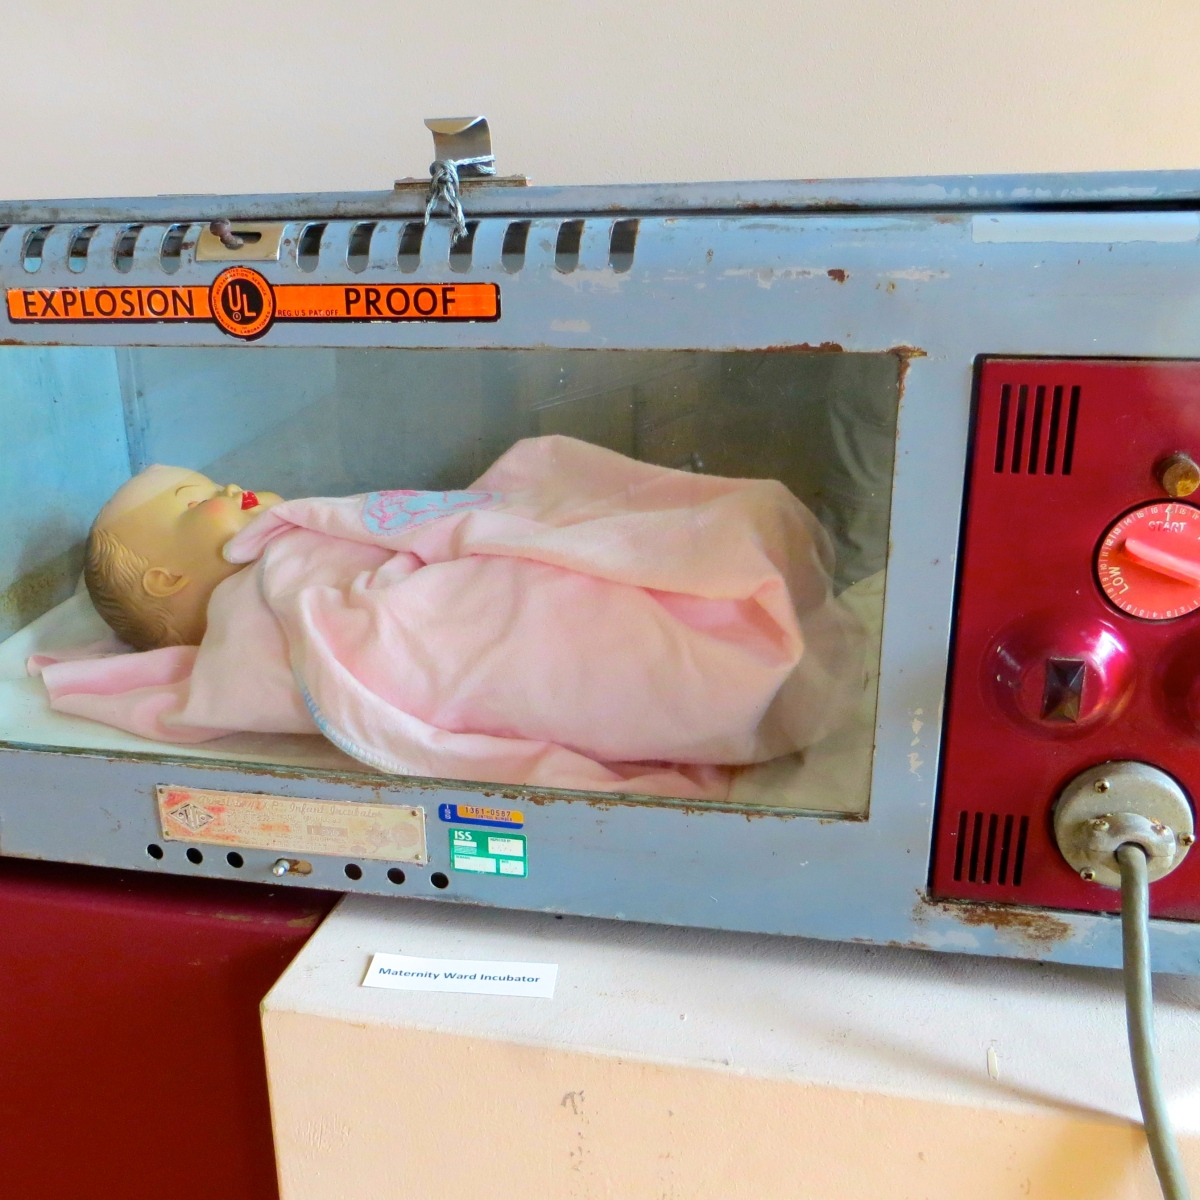 Explosion-Proof Baby Incubator? Good Technology - Worst Product Name in History